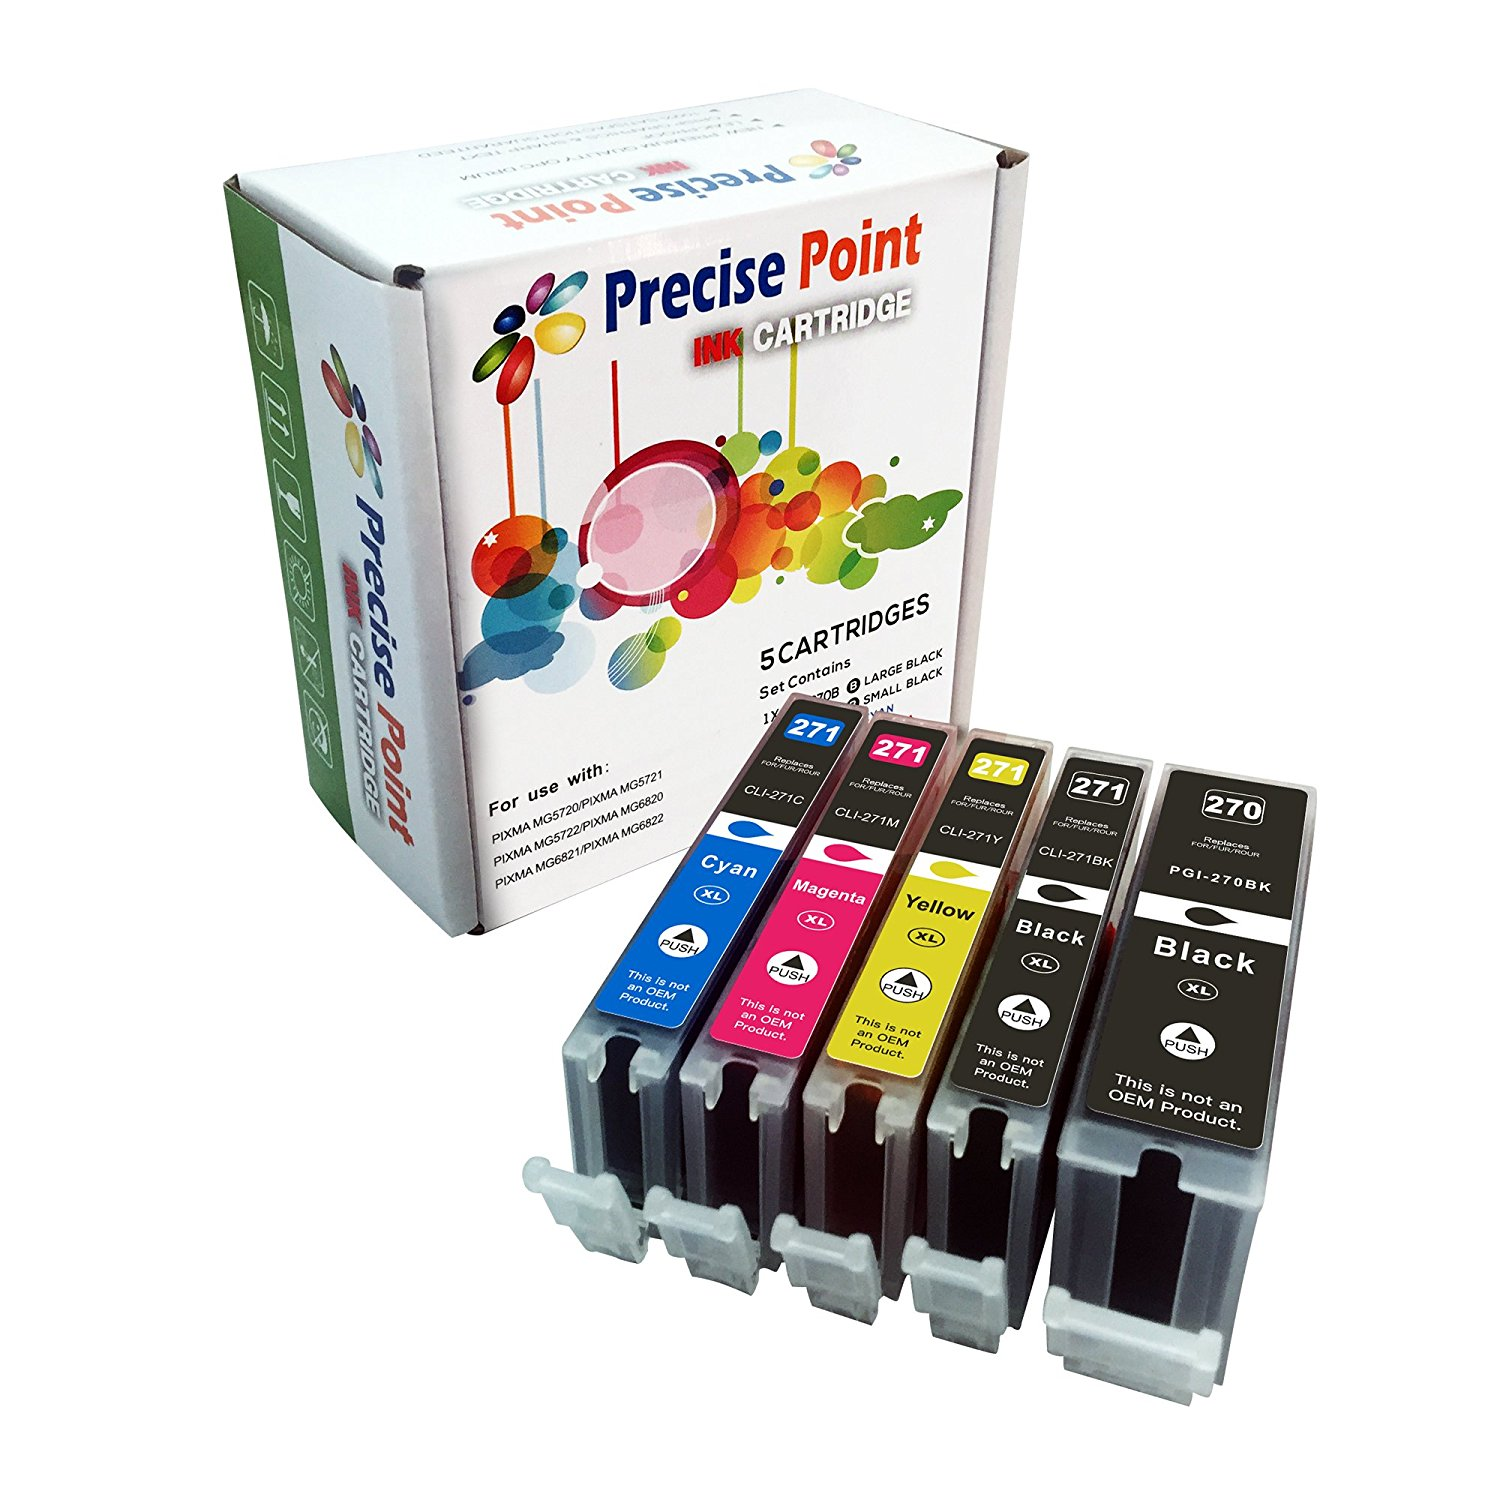 Precise Point Compatible Ink Cartridge Replacement for Canon PGI-270XL CLI-271XL (1 Large Black, 1 Small Black, 1 Cyan, 1 Yellow, 1 Magenta, 5-Pack)